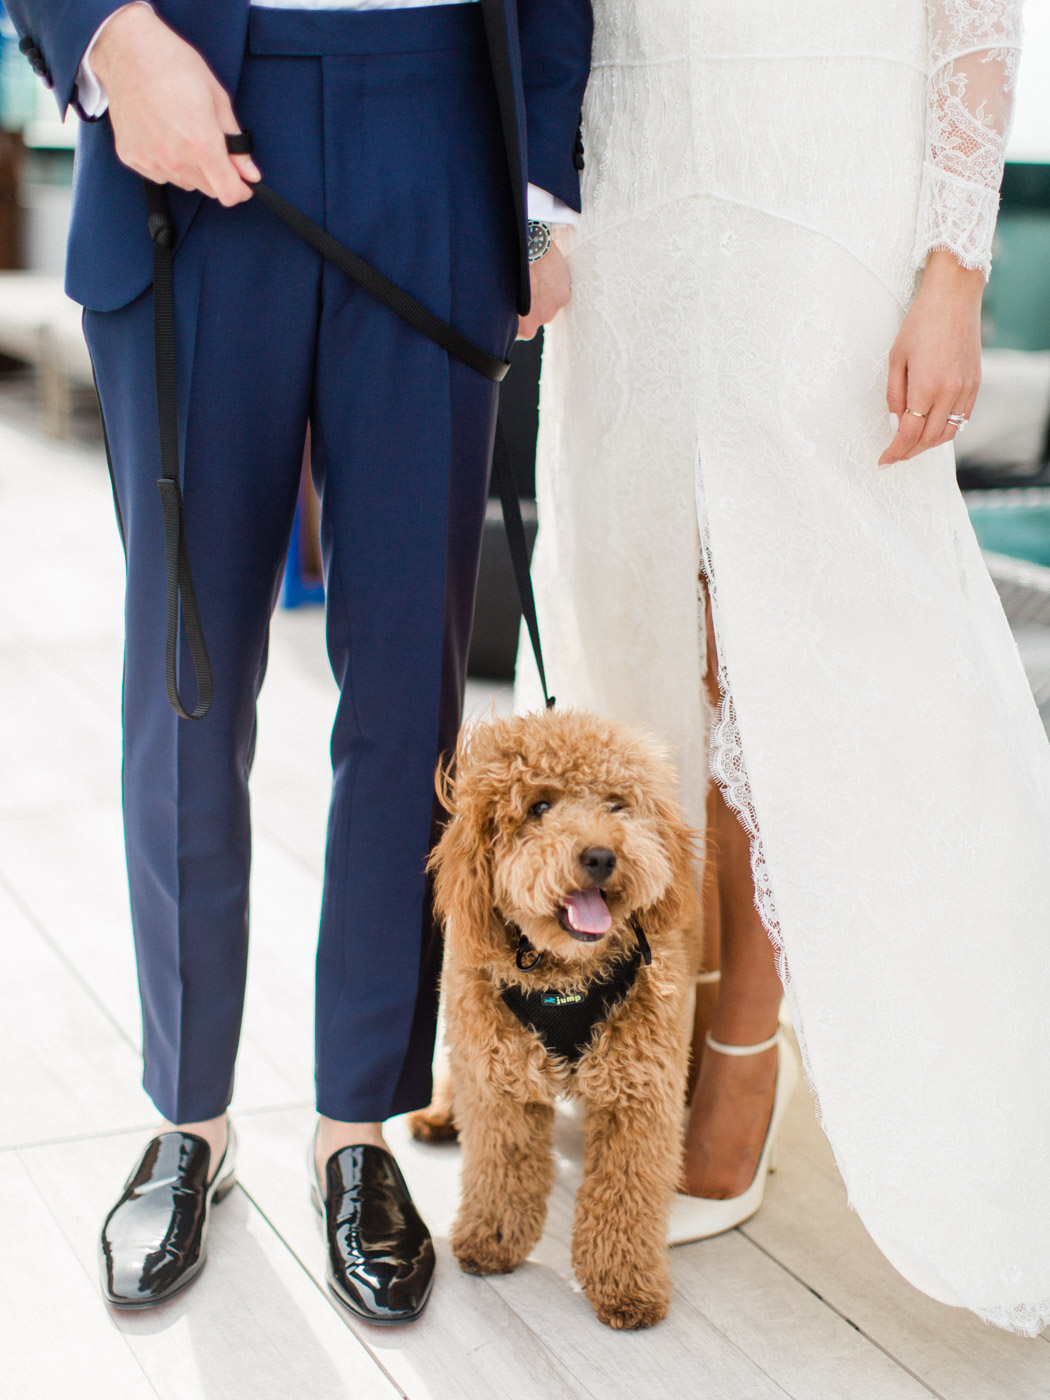 -Bride, groom , and puppy at vogue styled wedding in downtown Toronto.  Captured by Toronto wedding photographer, Corynn Fowler Photography.